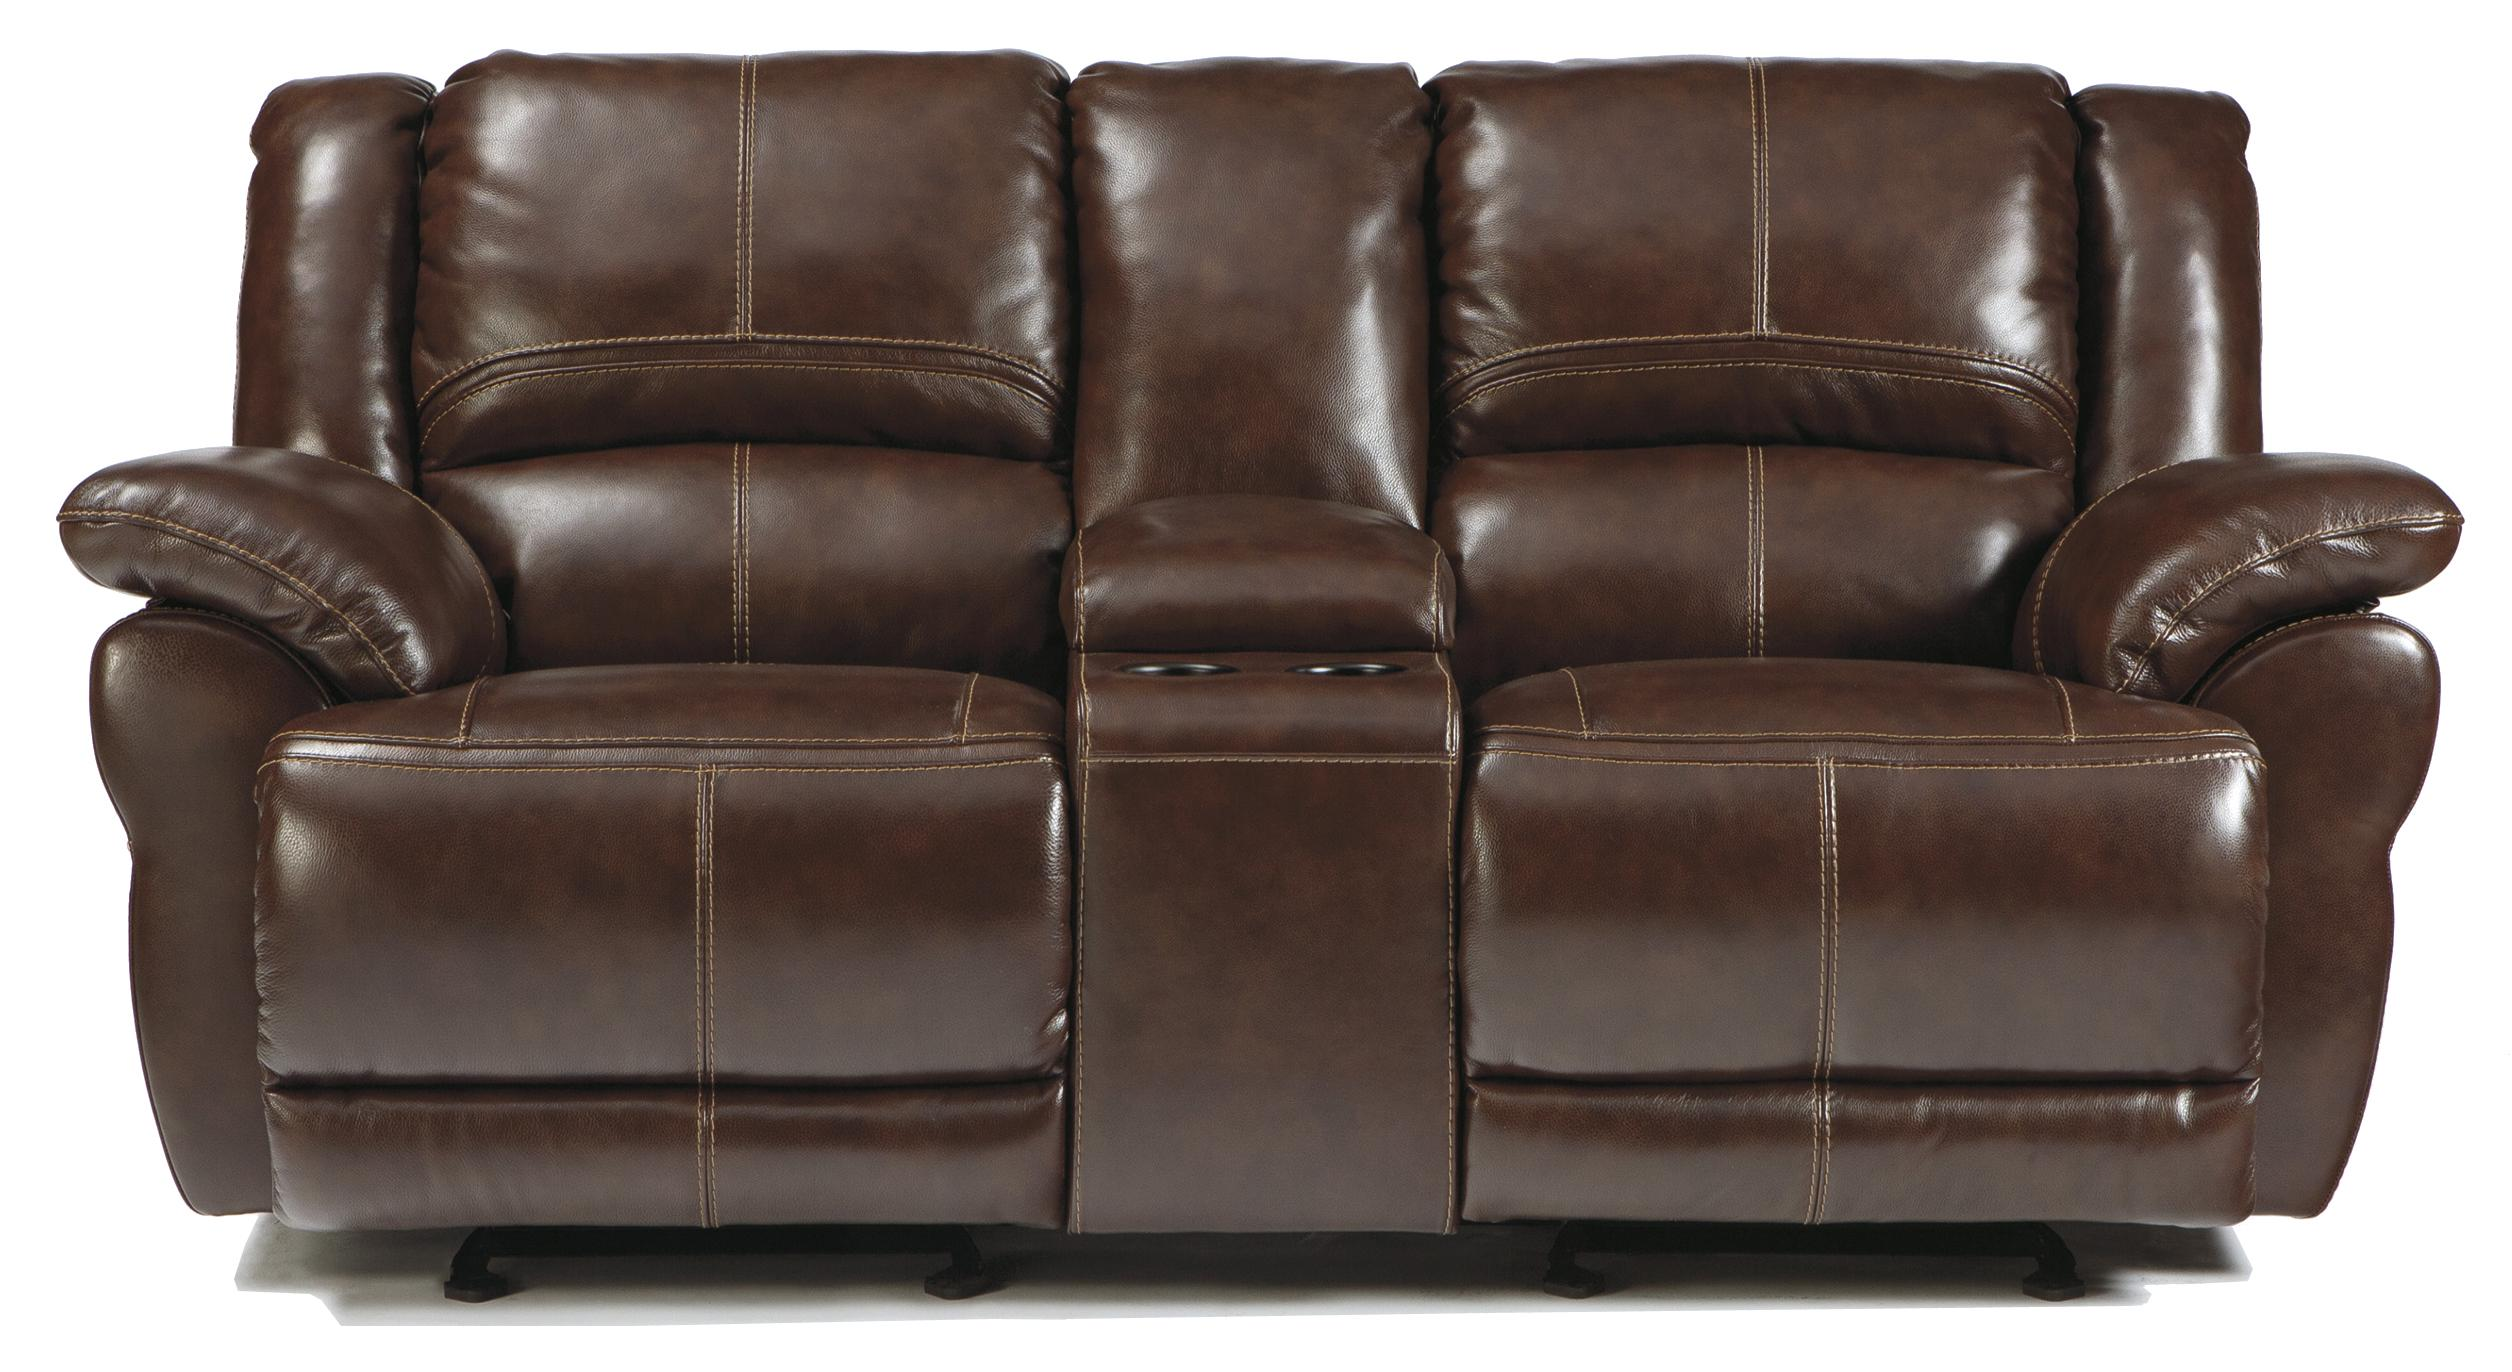 Signature Design By Ashley Furniture Lenoris Coffee Leather Match Glider Reclining Power